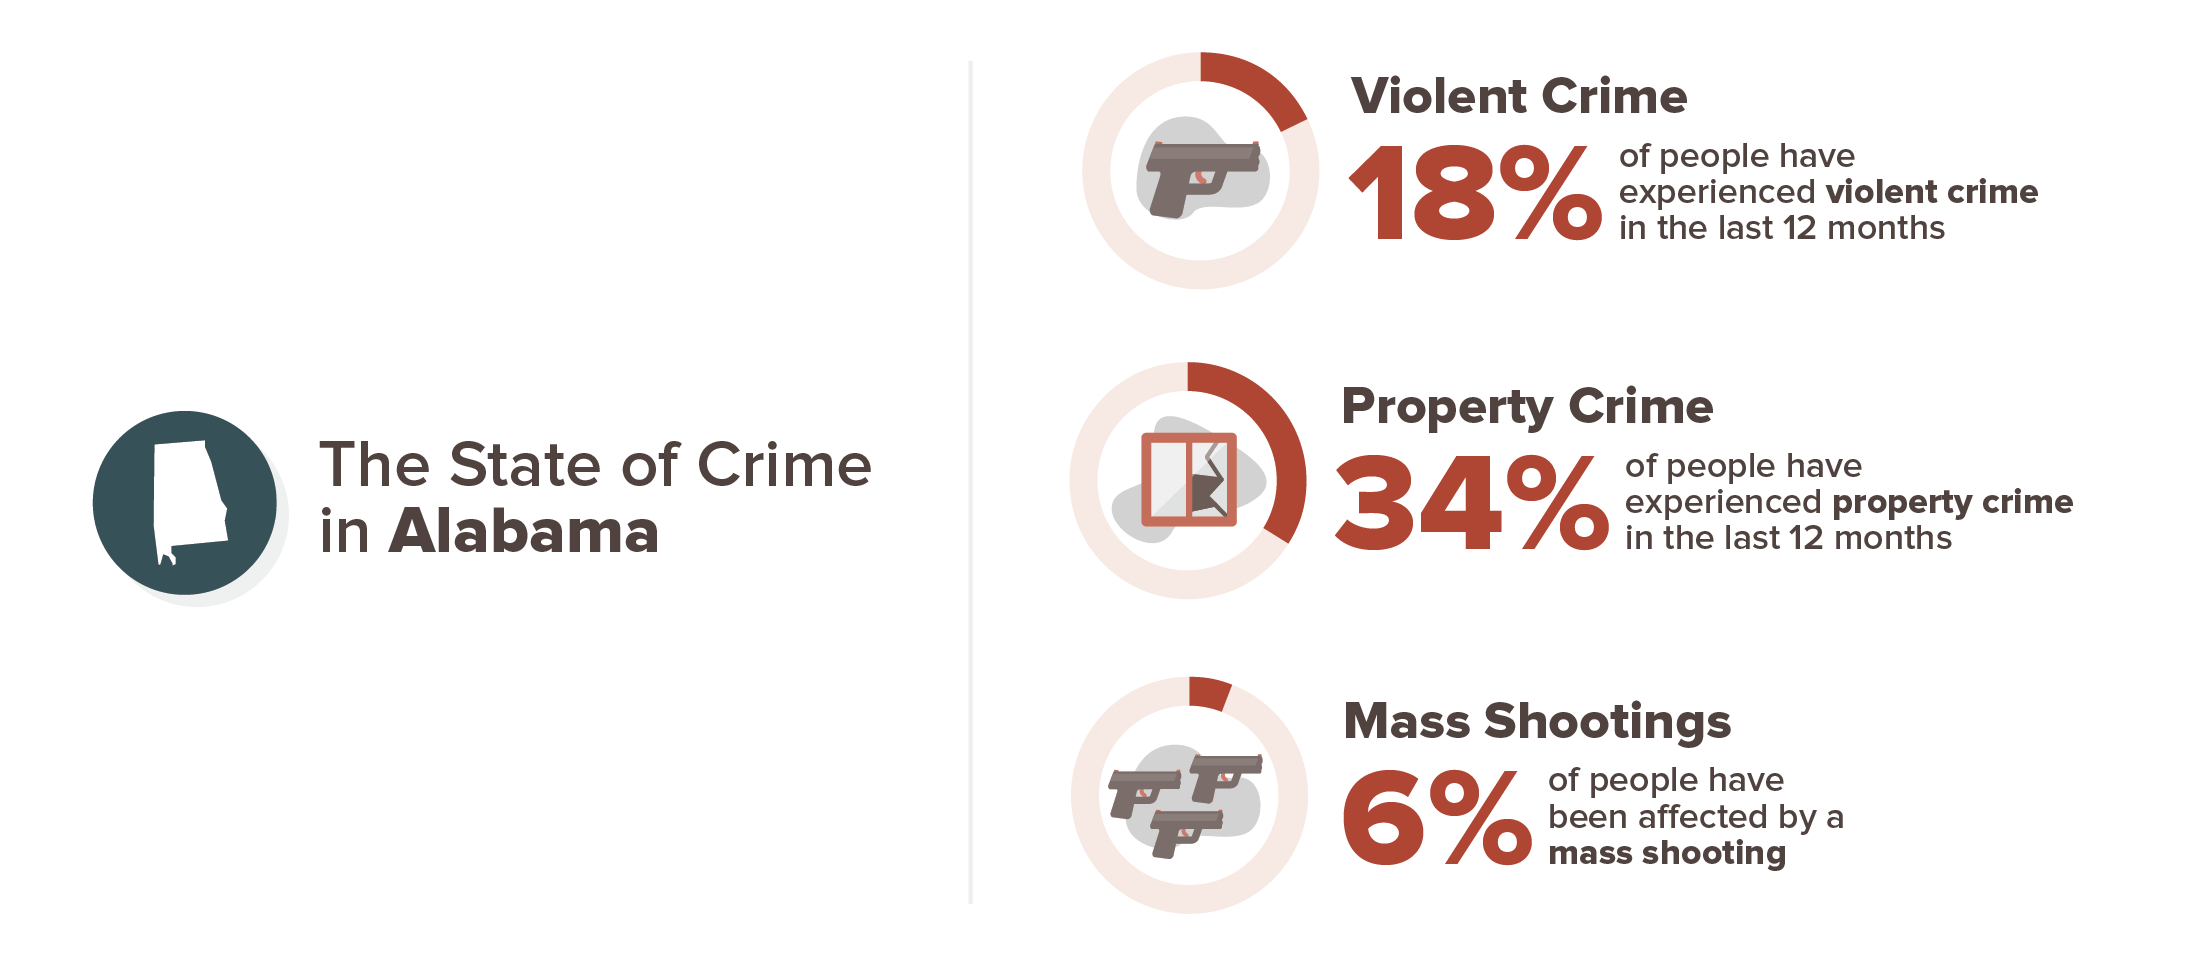 Alabama experience with crime infographic; 18% violent crime, 34% property crime, 6% mass shooting